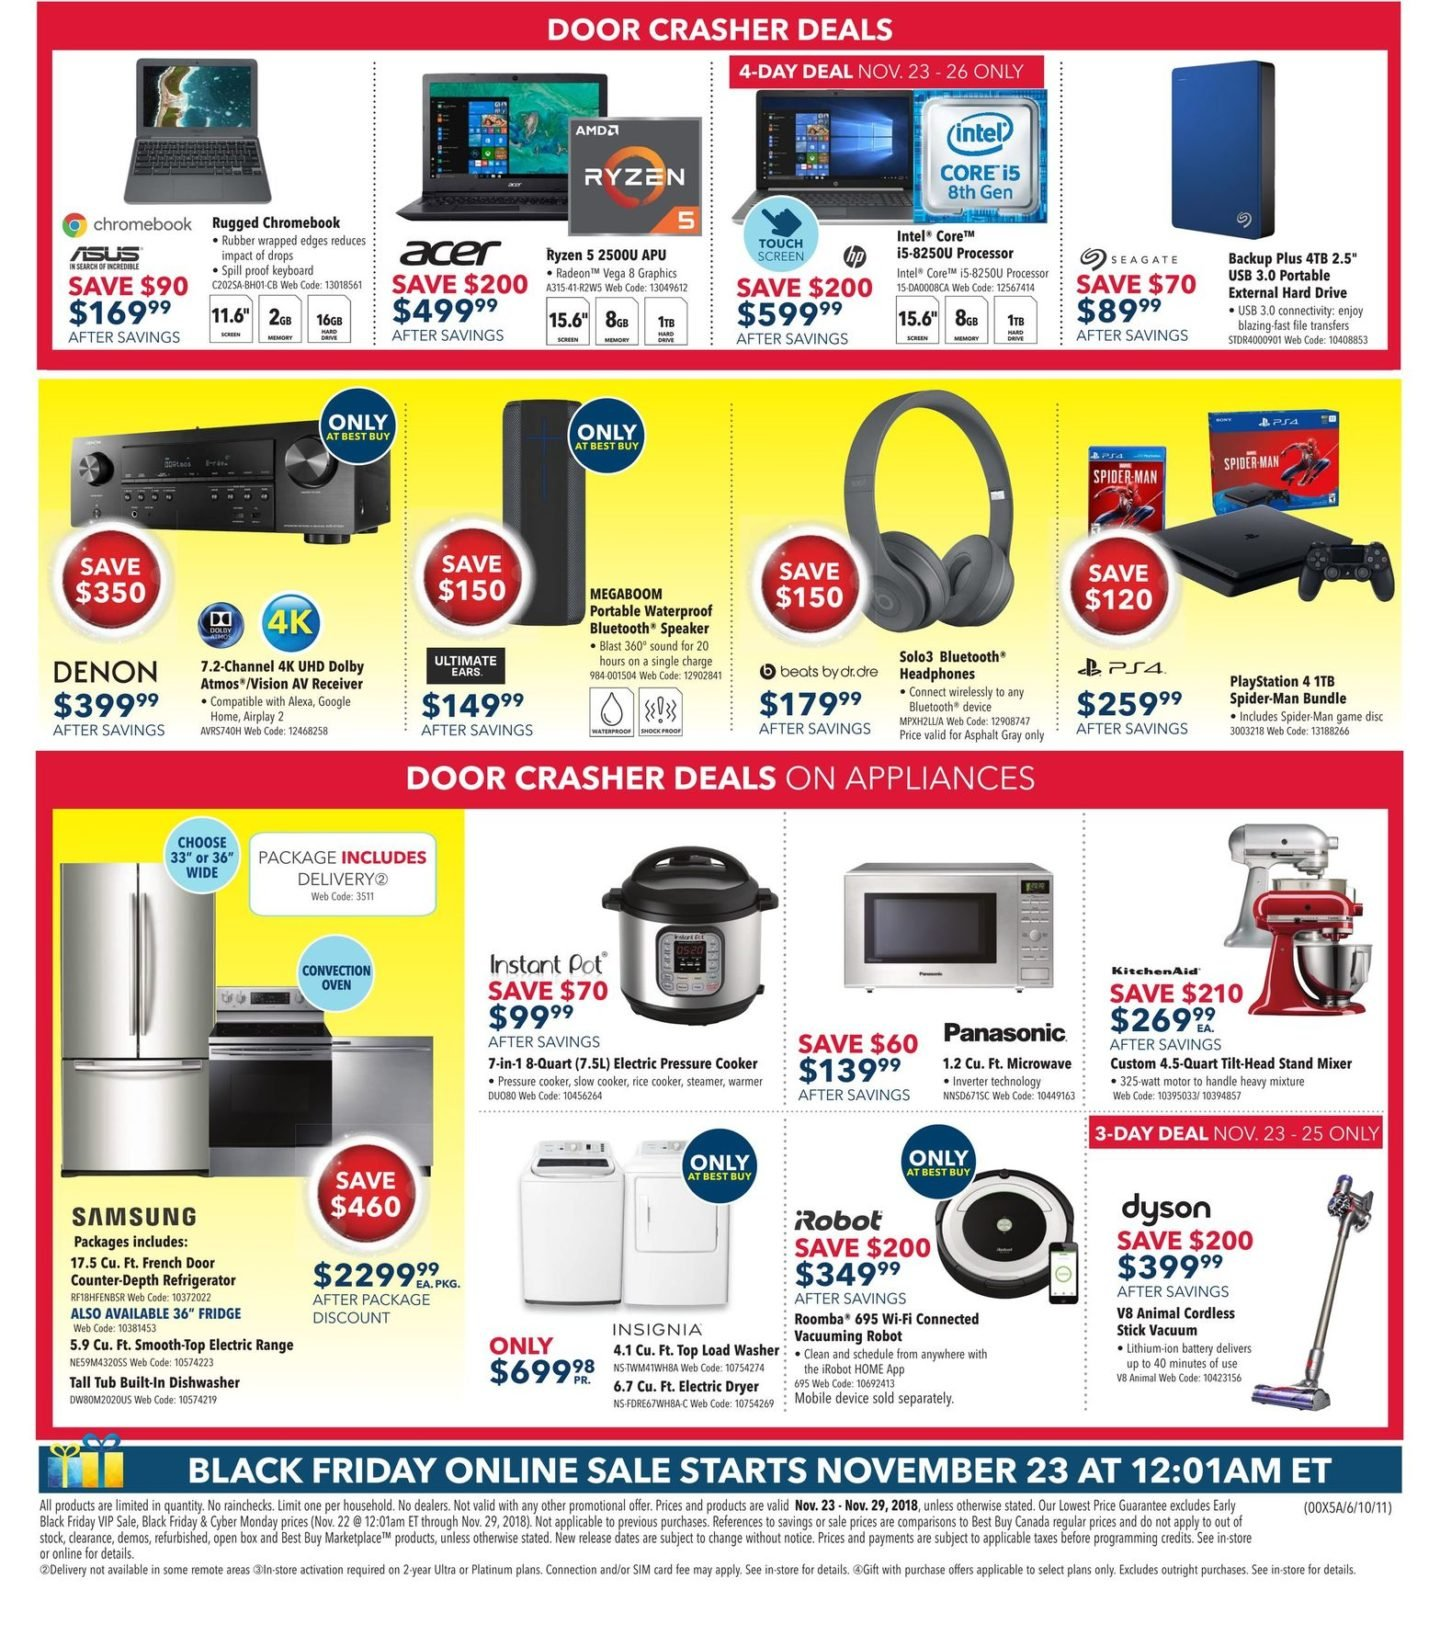 25582015ccad4 ... while you can shop online starting at 12:01 AM ET. The sale will  continue beyond Friday, into Cyber Monday 2018 on November 26.